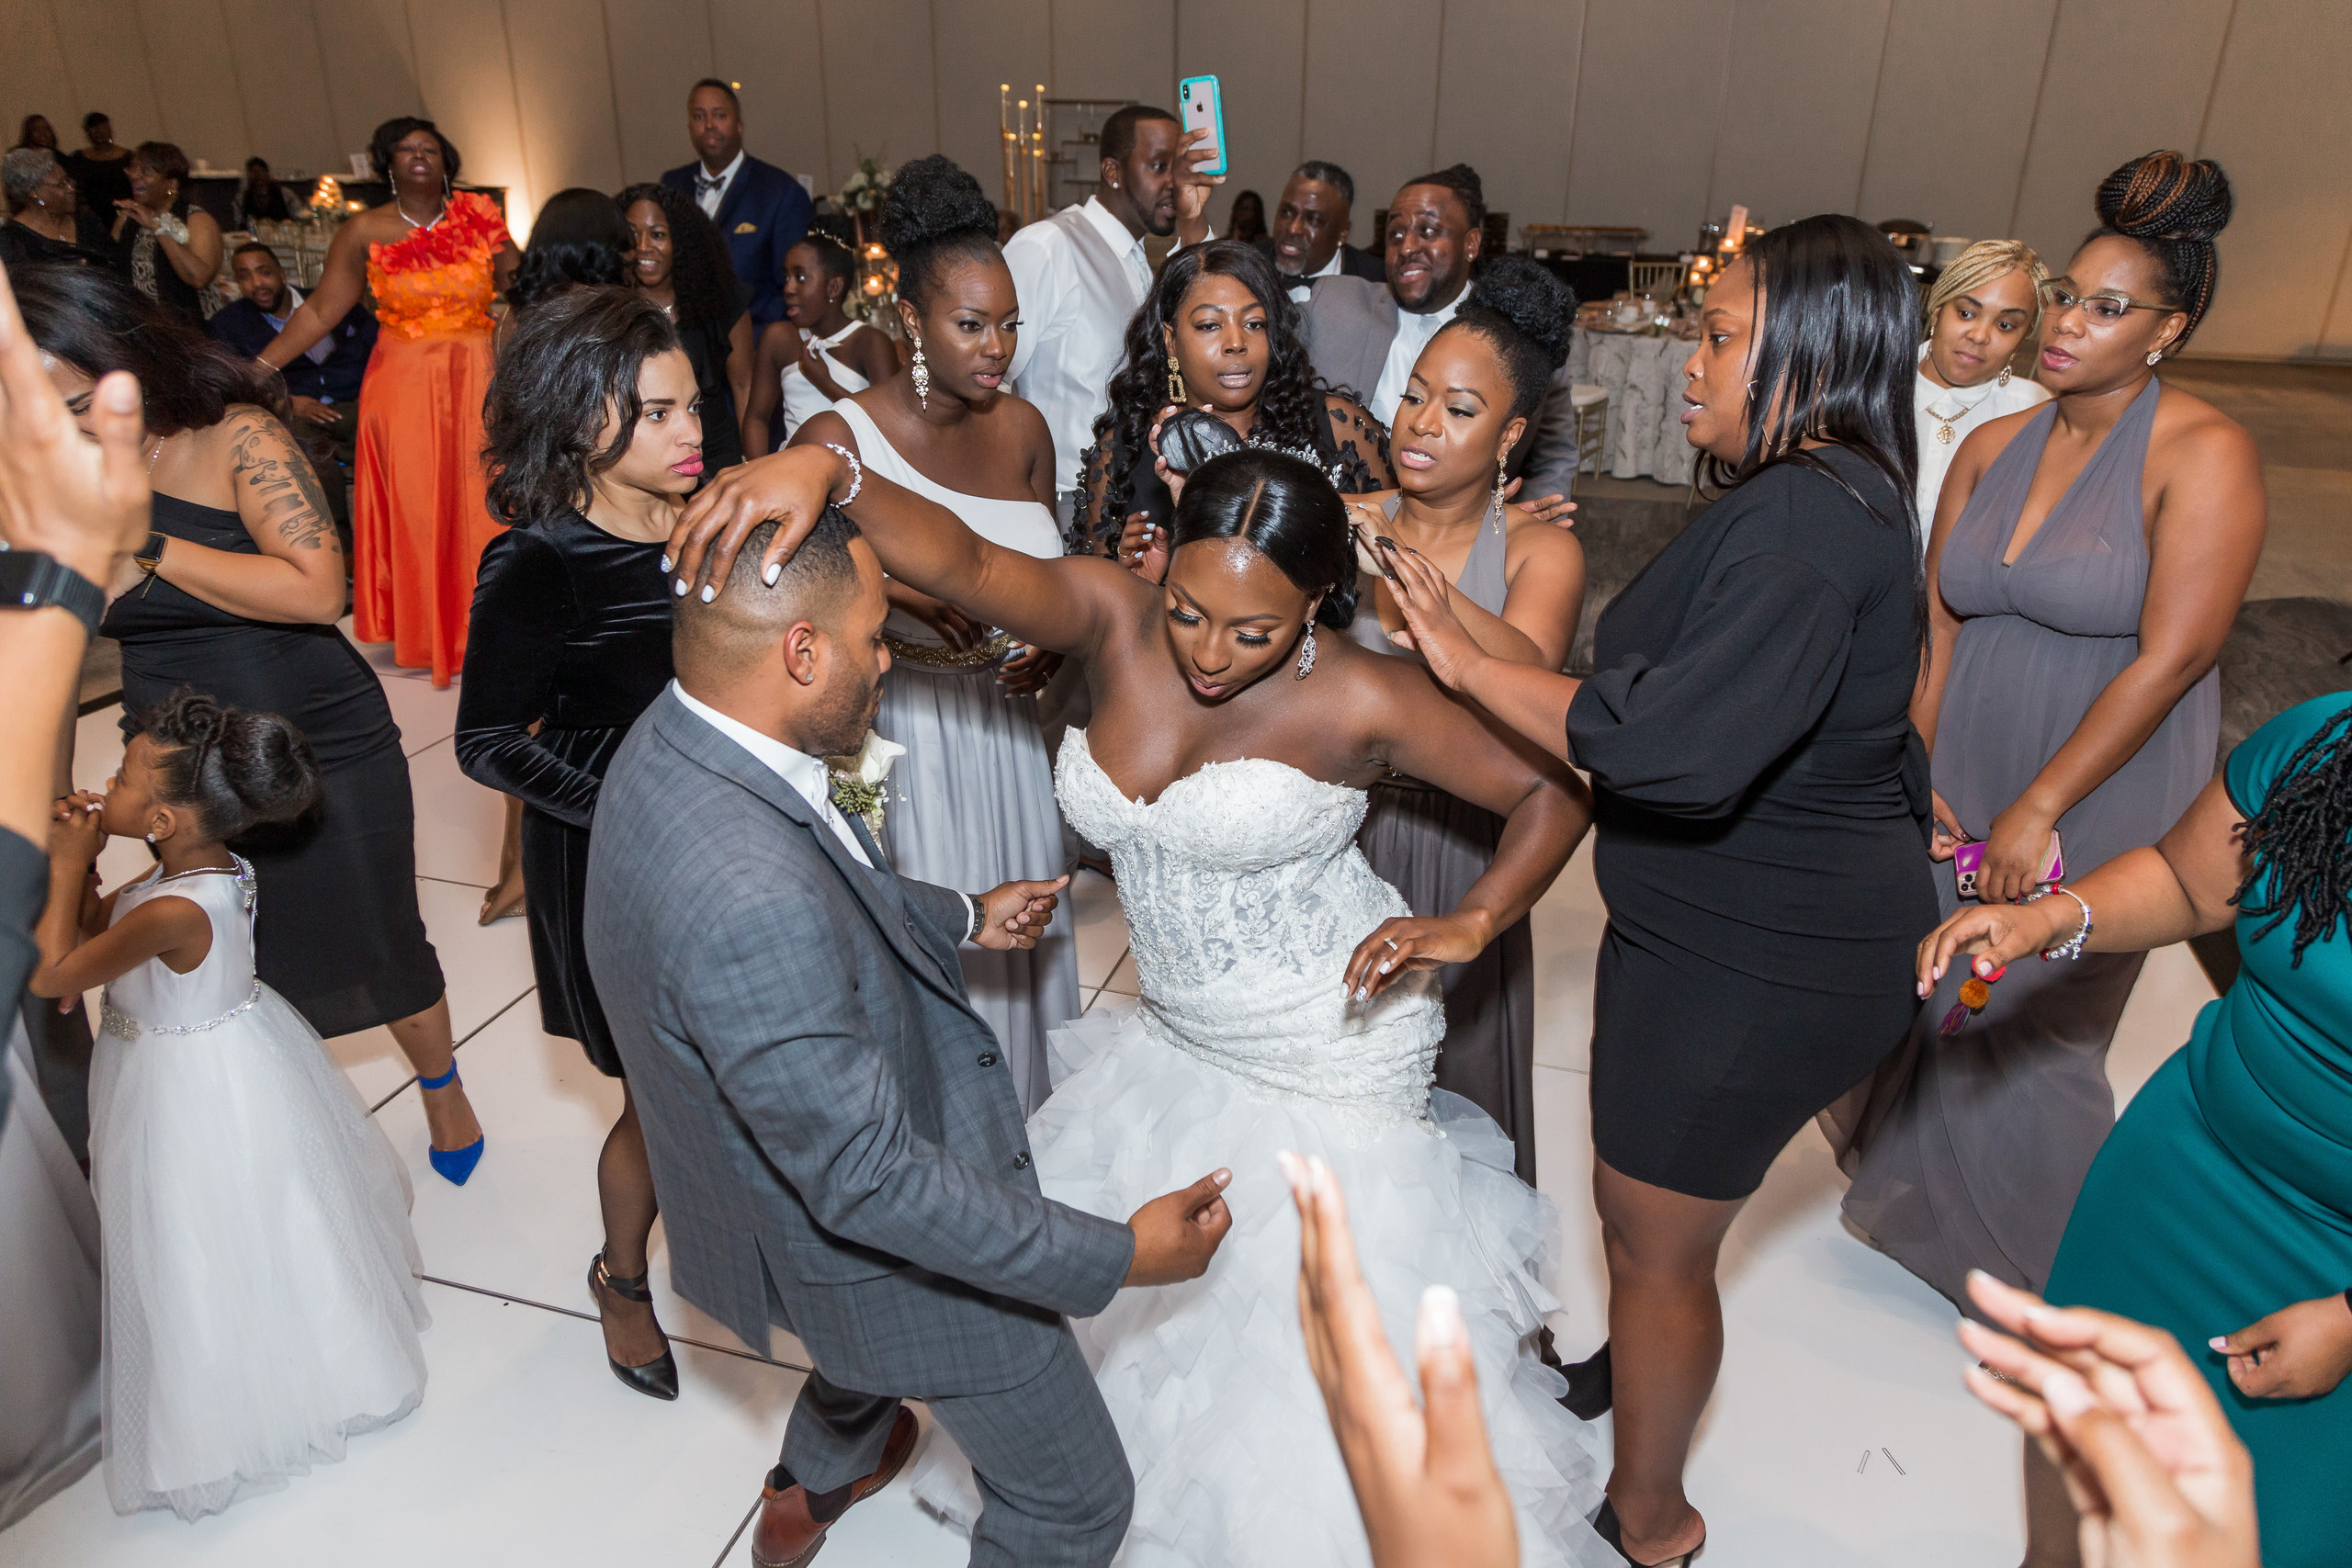 The bride and groom dance on the dancefloor during the wedding reception at the Hilton Main in Norfolk, Virginia.